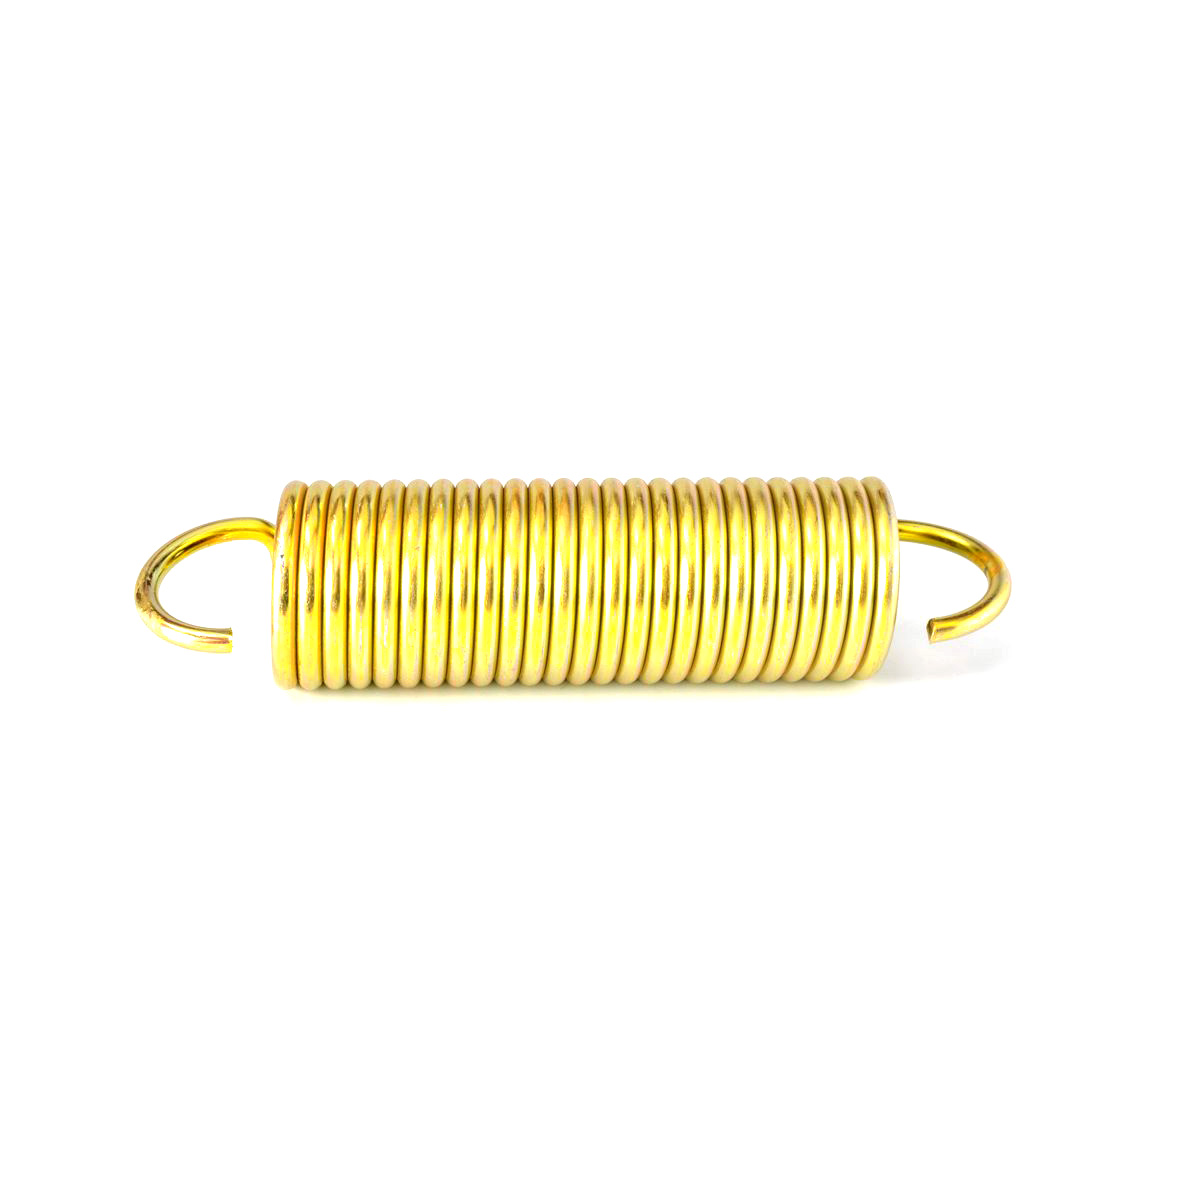 Scag Deck Lift Spring 483374